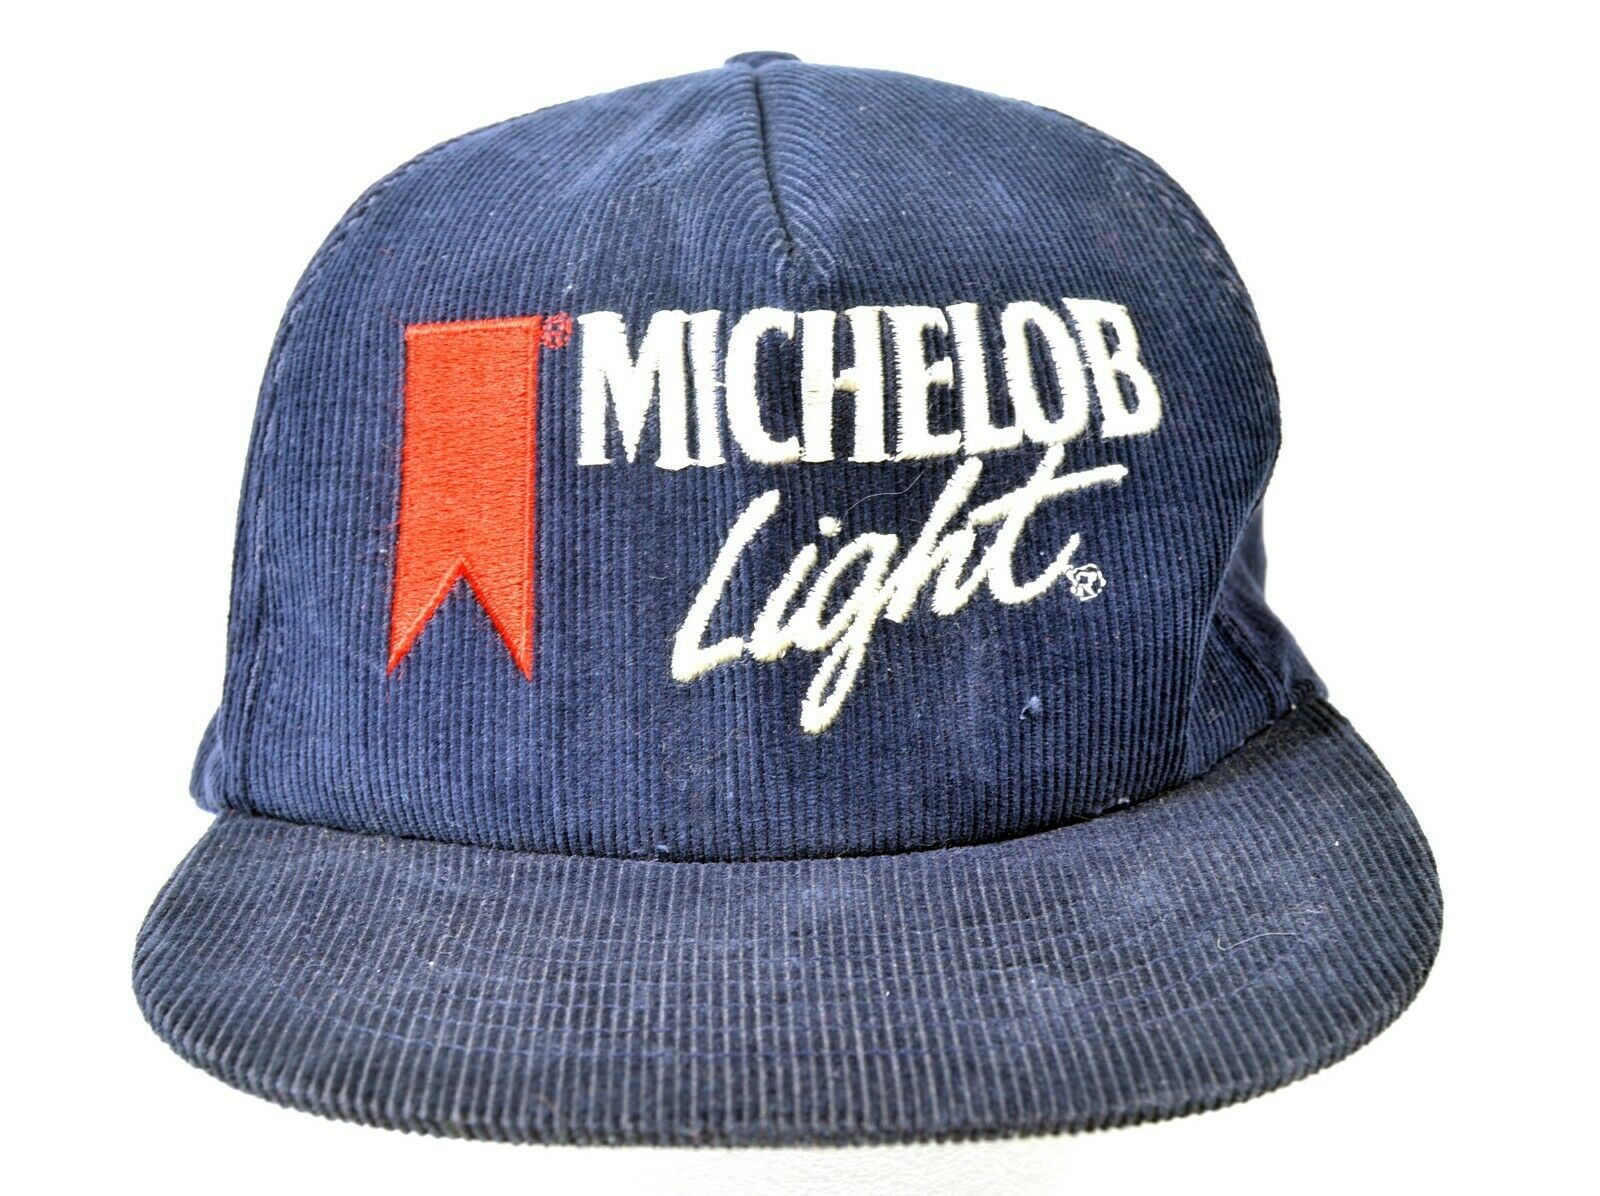 Michelob Light Snapback Beer Hat - Blue - OSFA